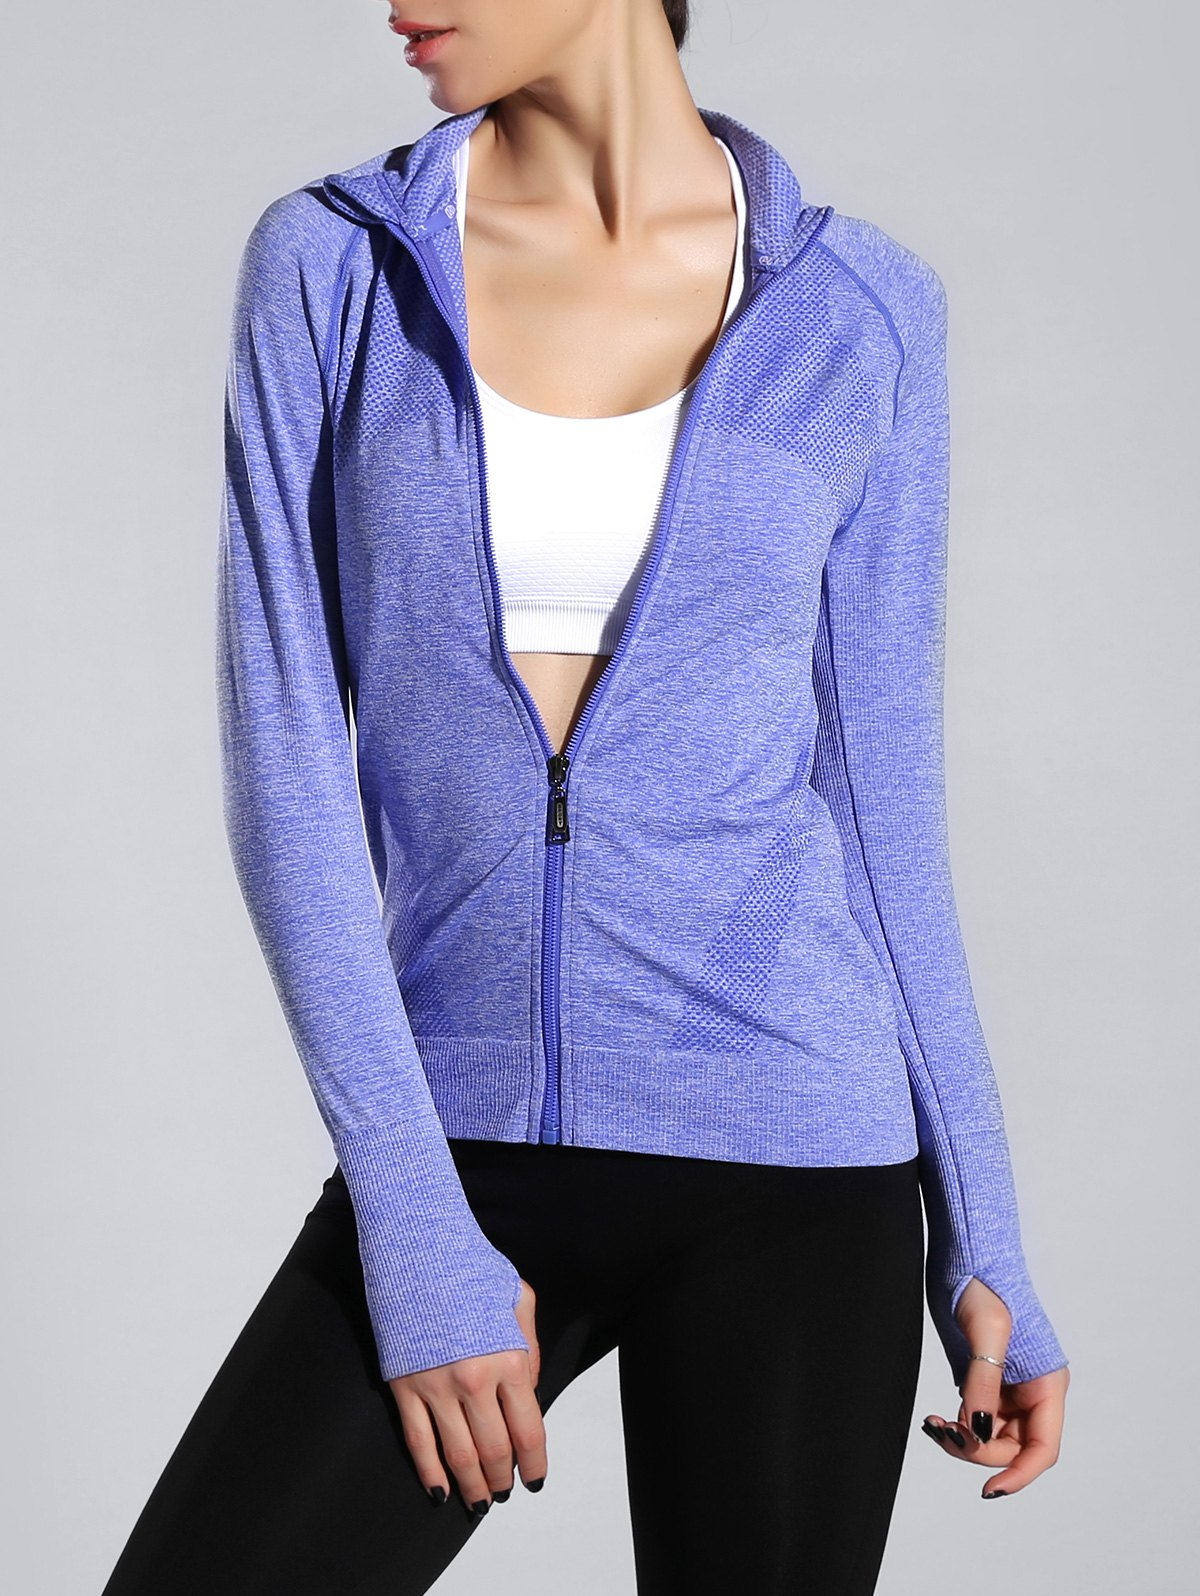 Espace Dye Zipper volant Slim Sporty Jacket